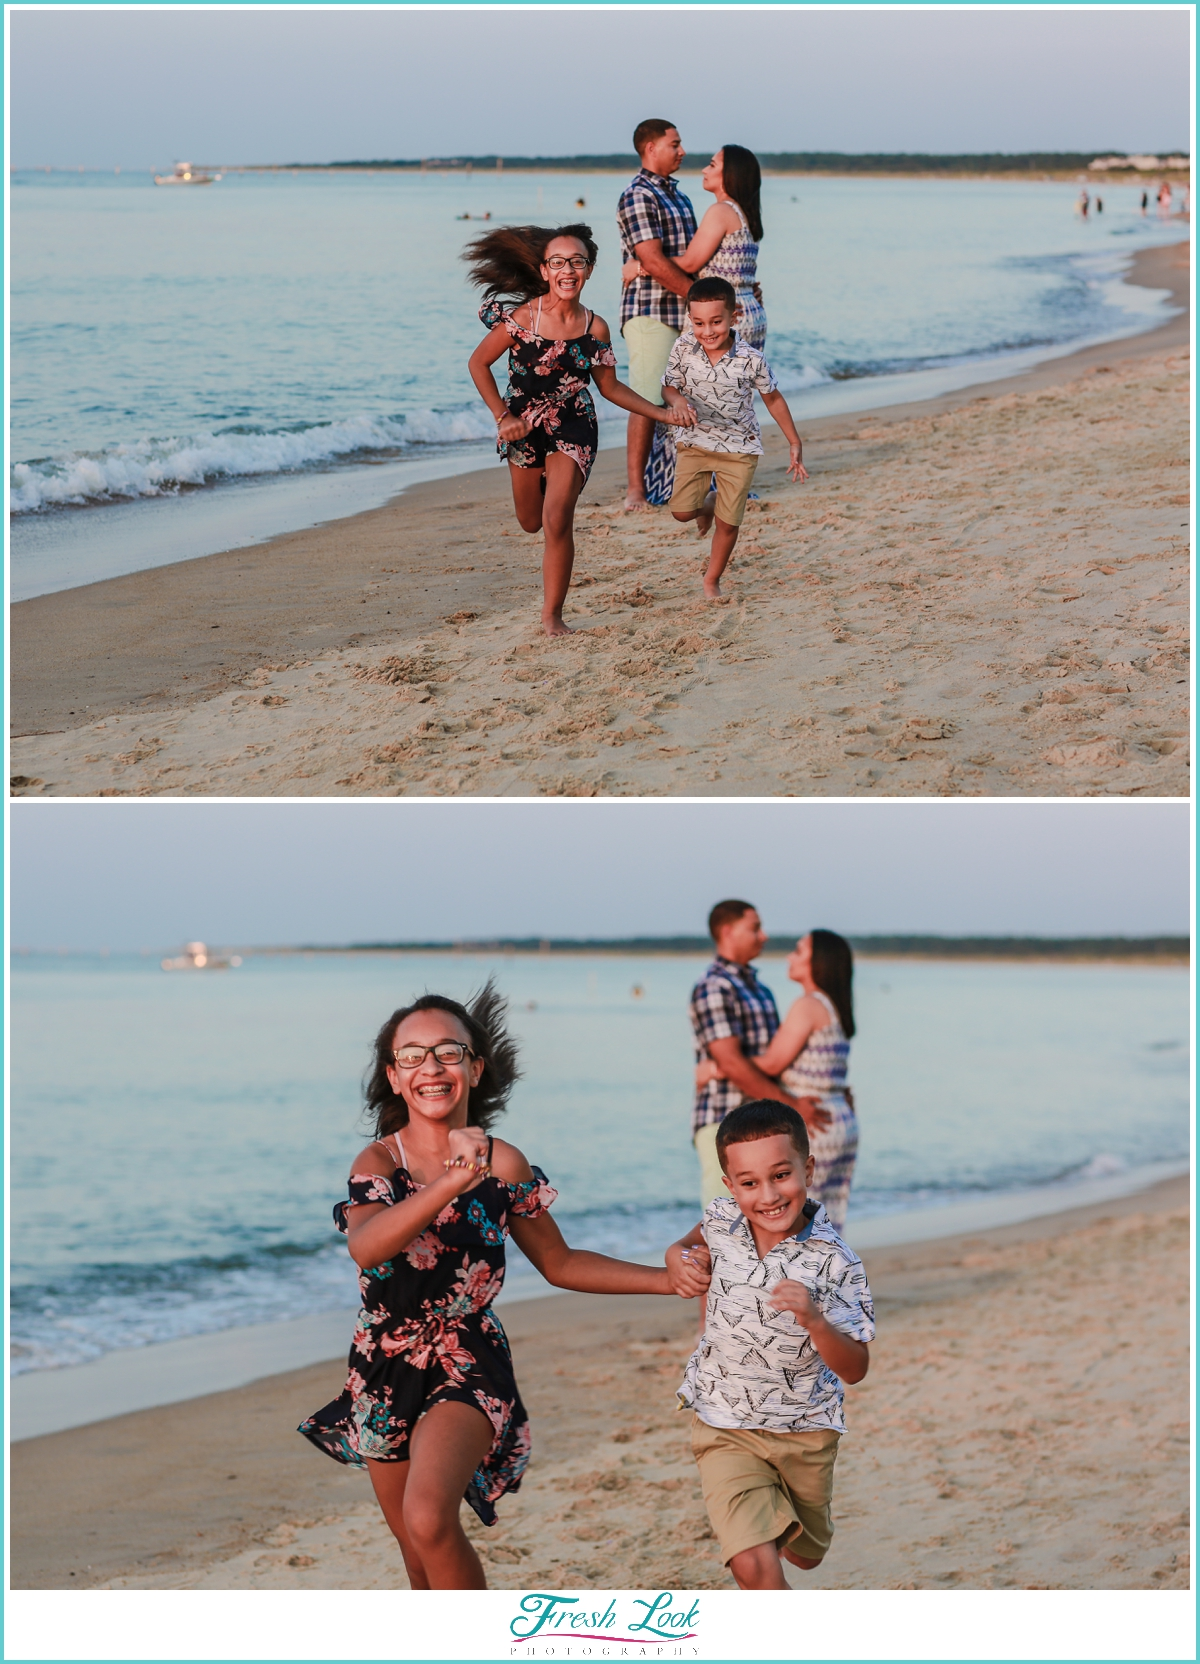 kids running on the beach